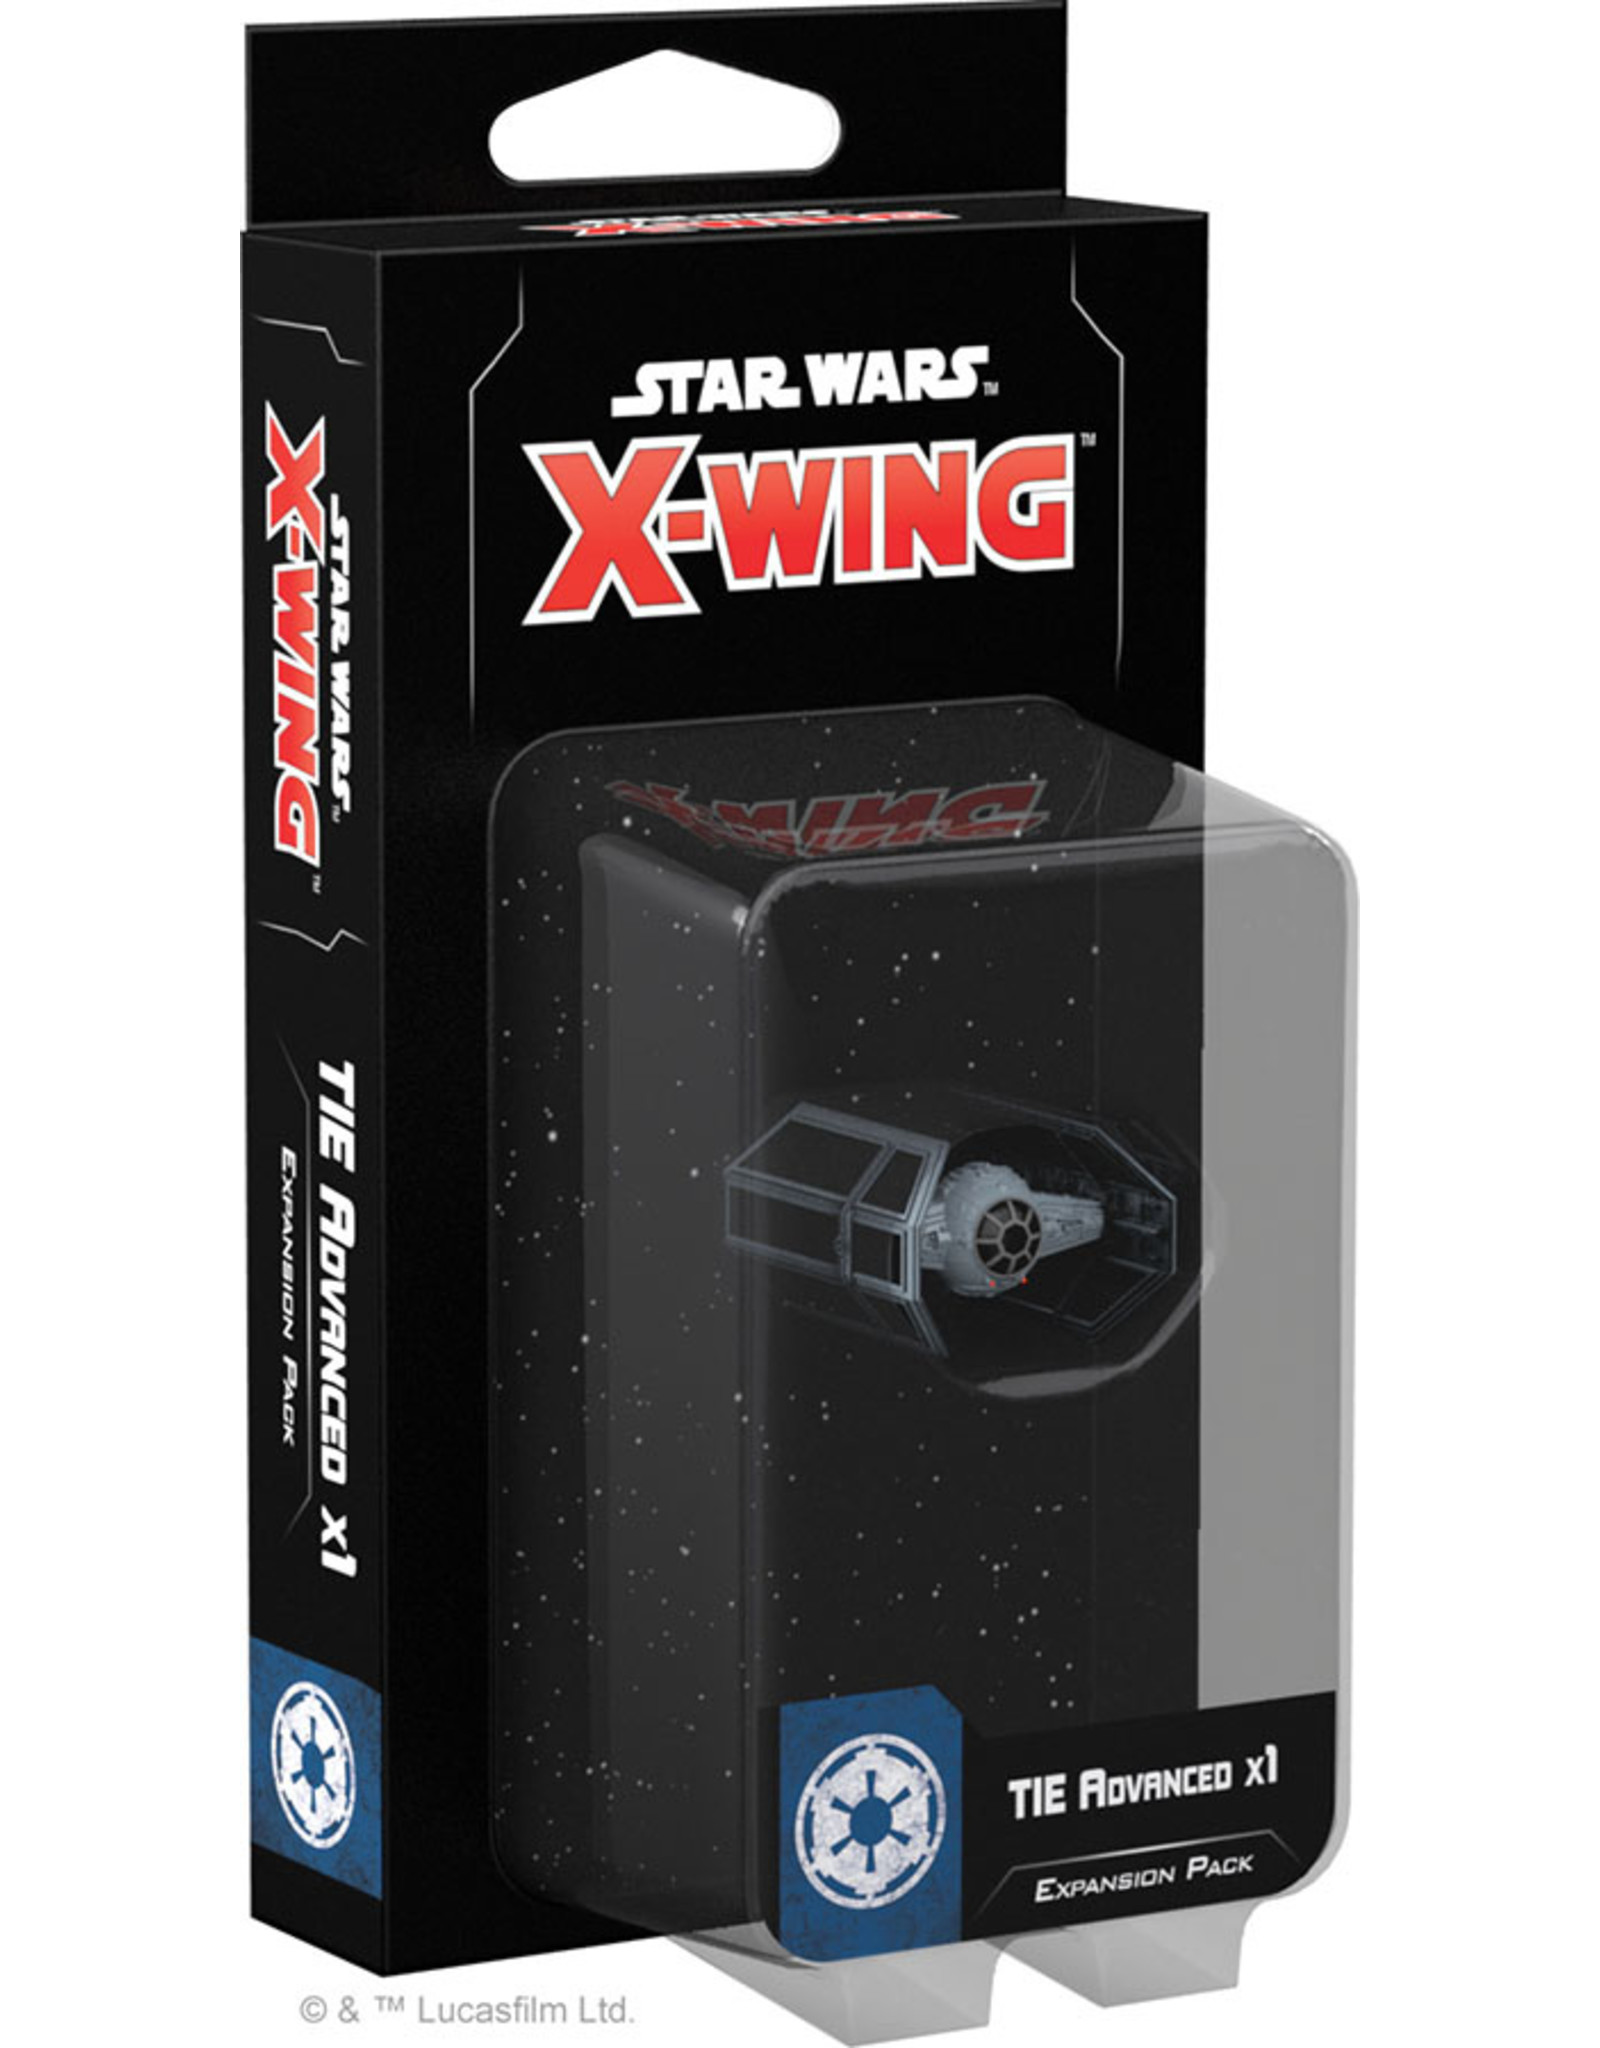 Fantasy Flight Games Star Wars X-Wing: 2nd Edition - Tie Advanced x1 Expansion